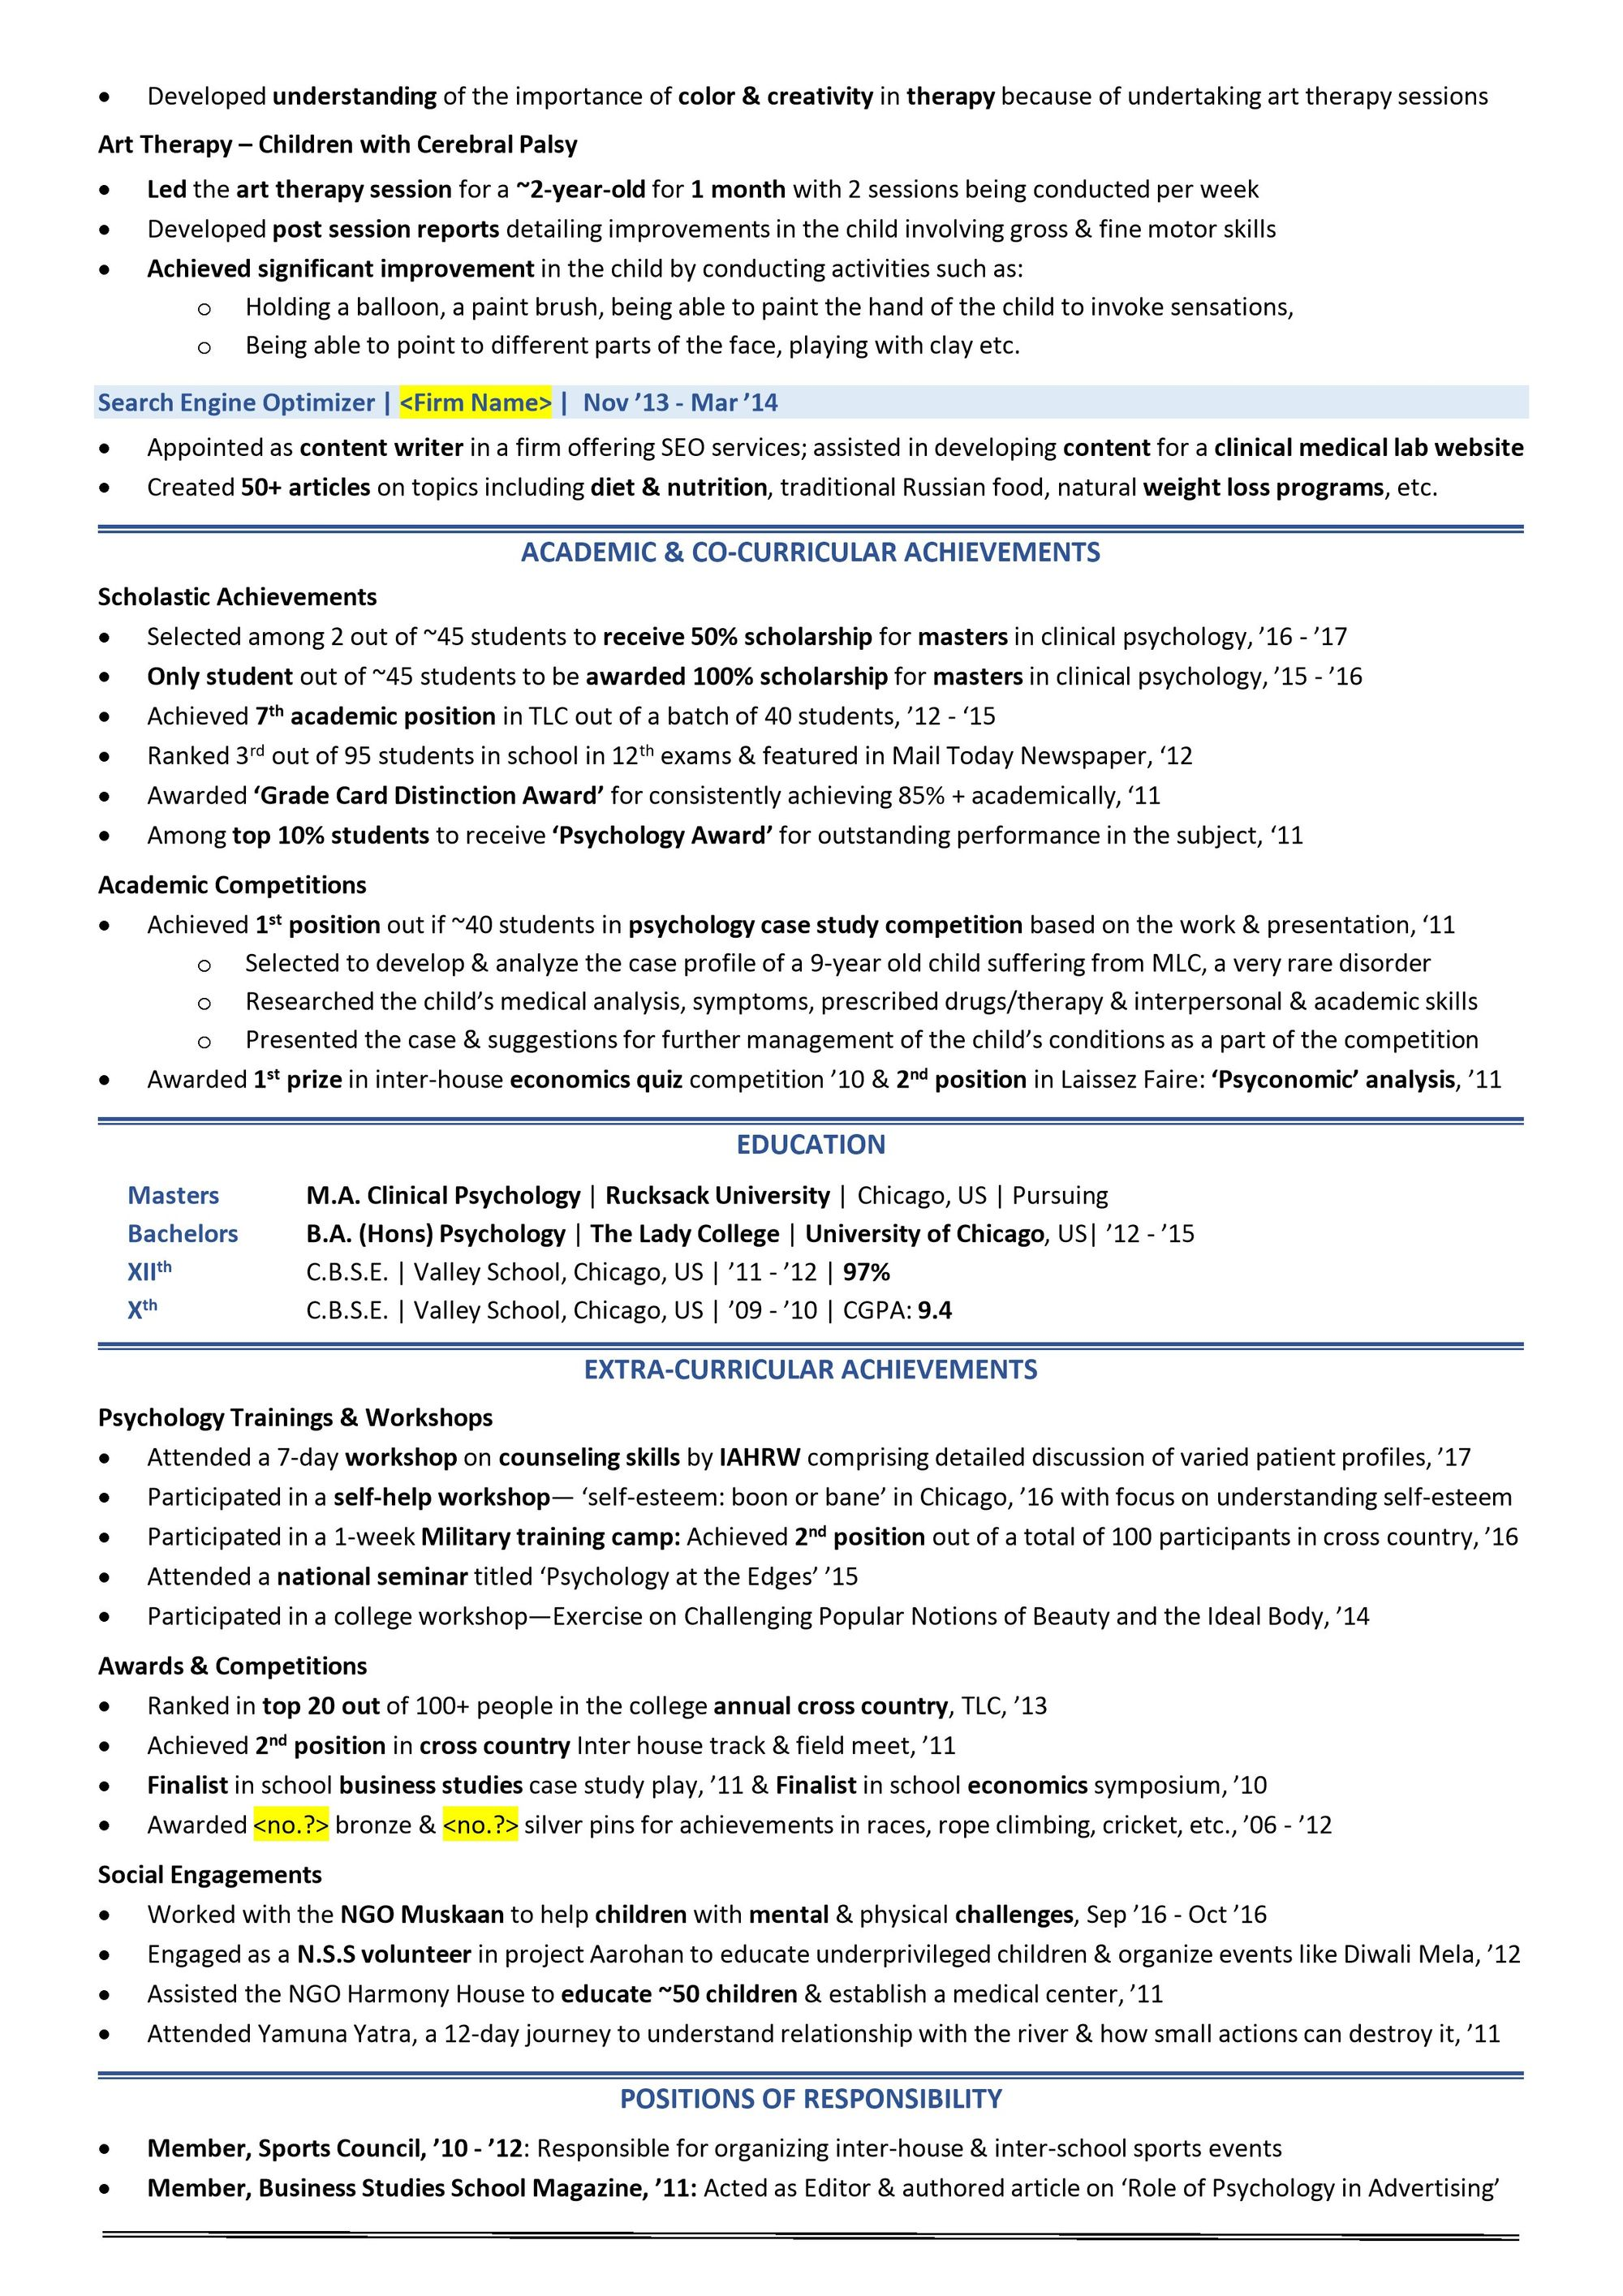 Scholarship Resume 2019 Guide With Scholarship Examples Samples